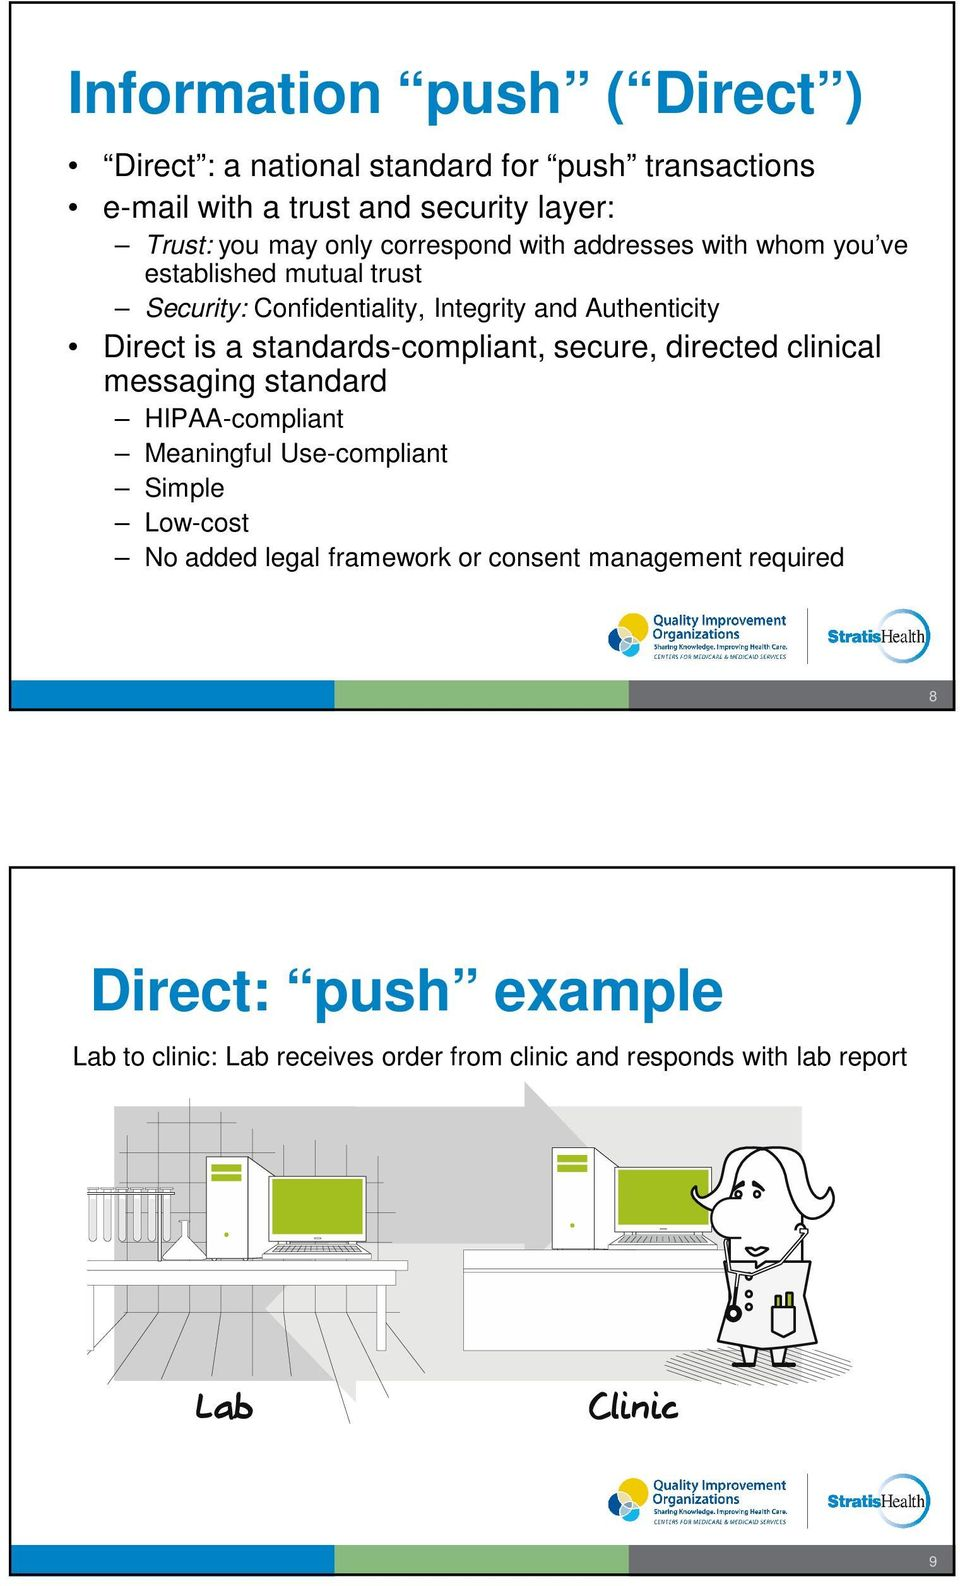 a standards-compliant, secure, directed clinical messaging standard HIPAA-compliant Meaningful Use-compliant Simple Low-cost No added